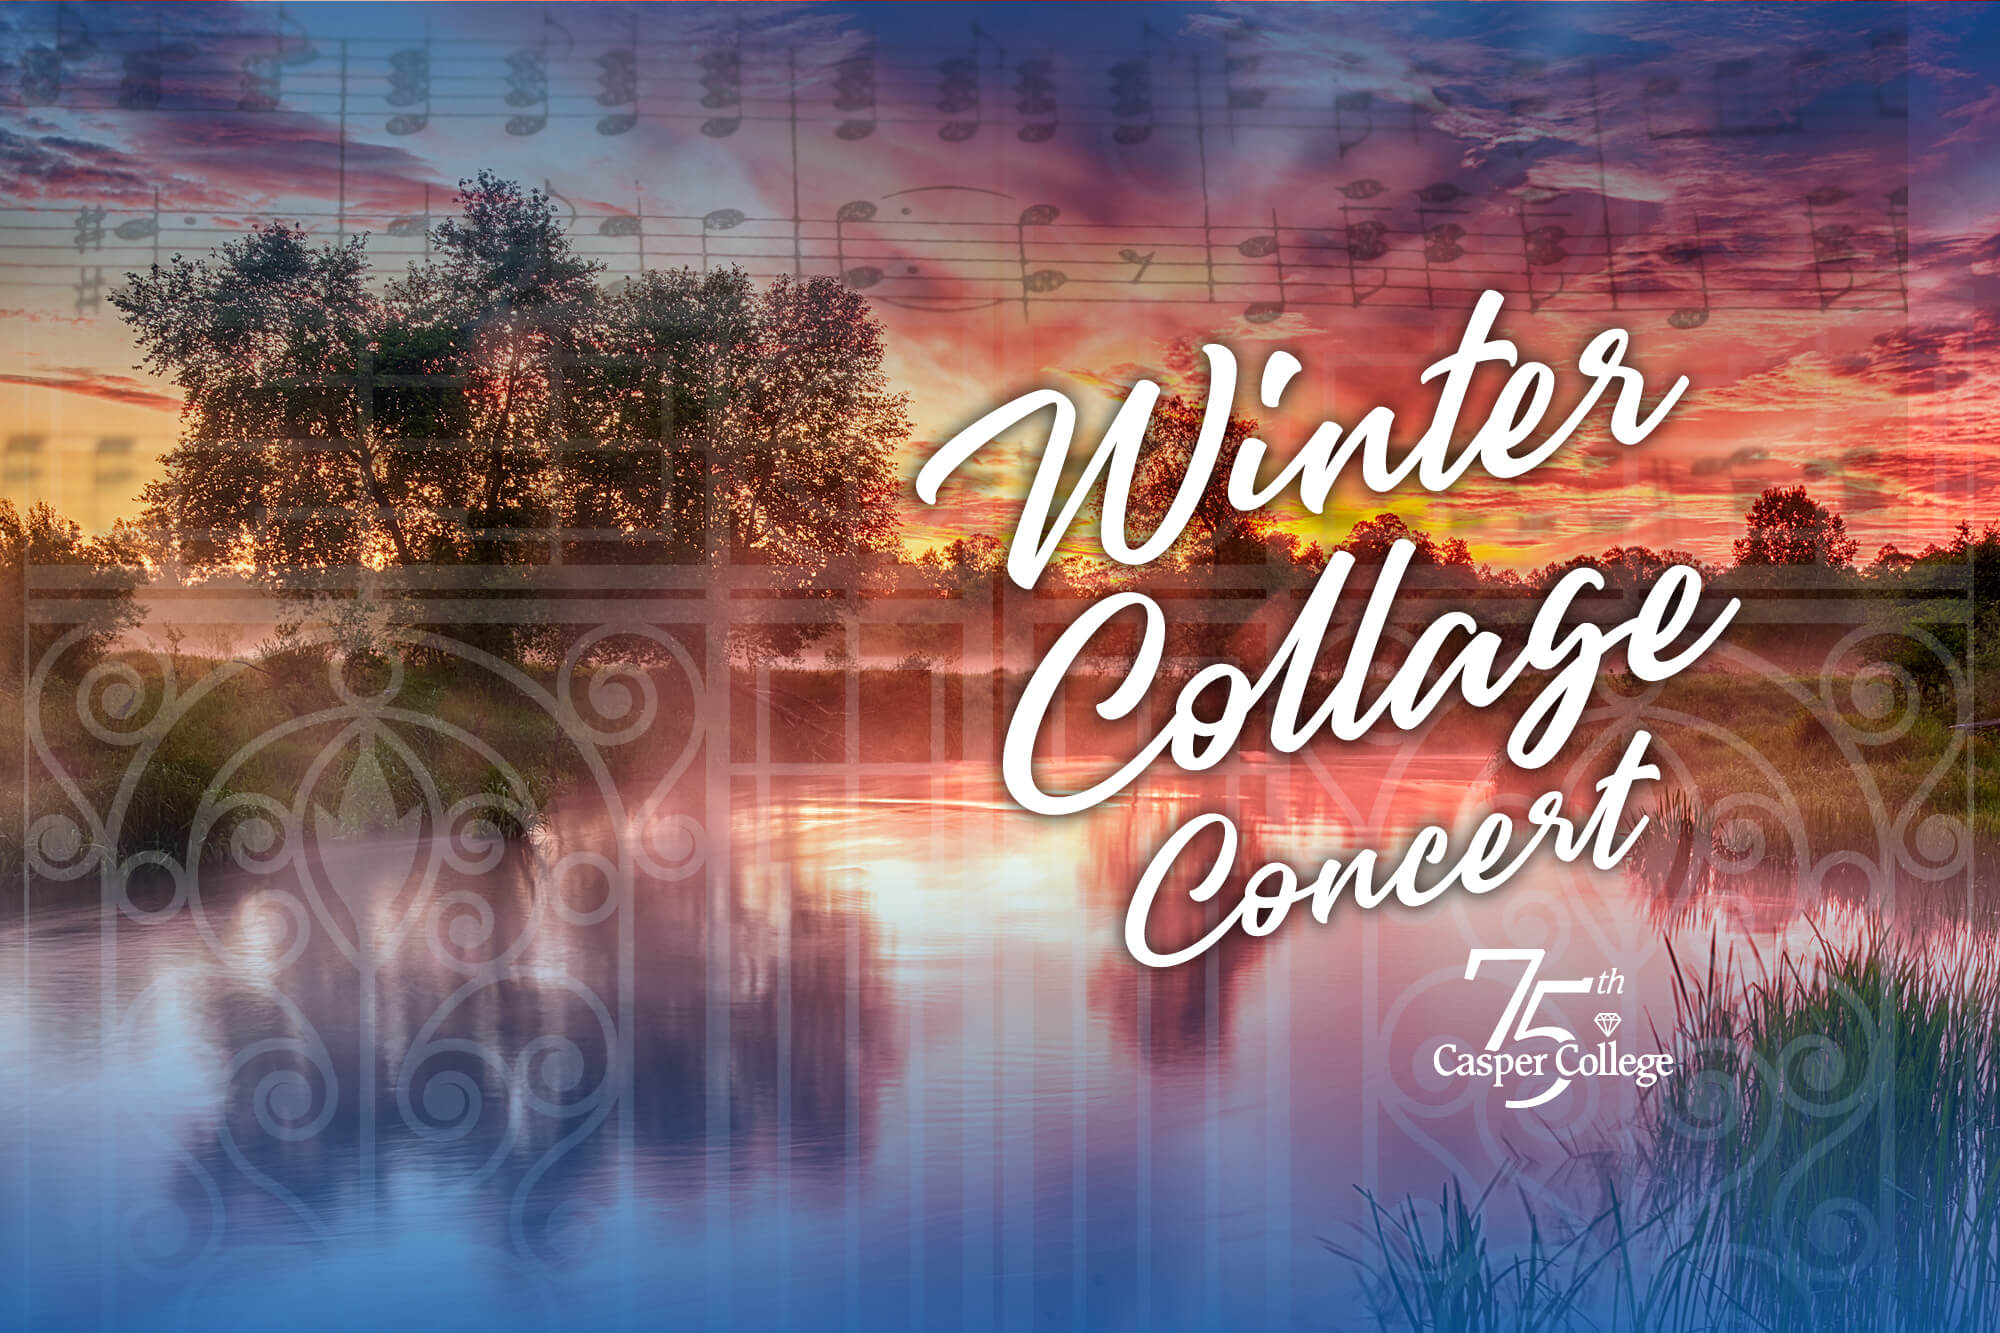 Image for Winter Collage concert.